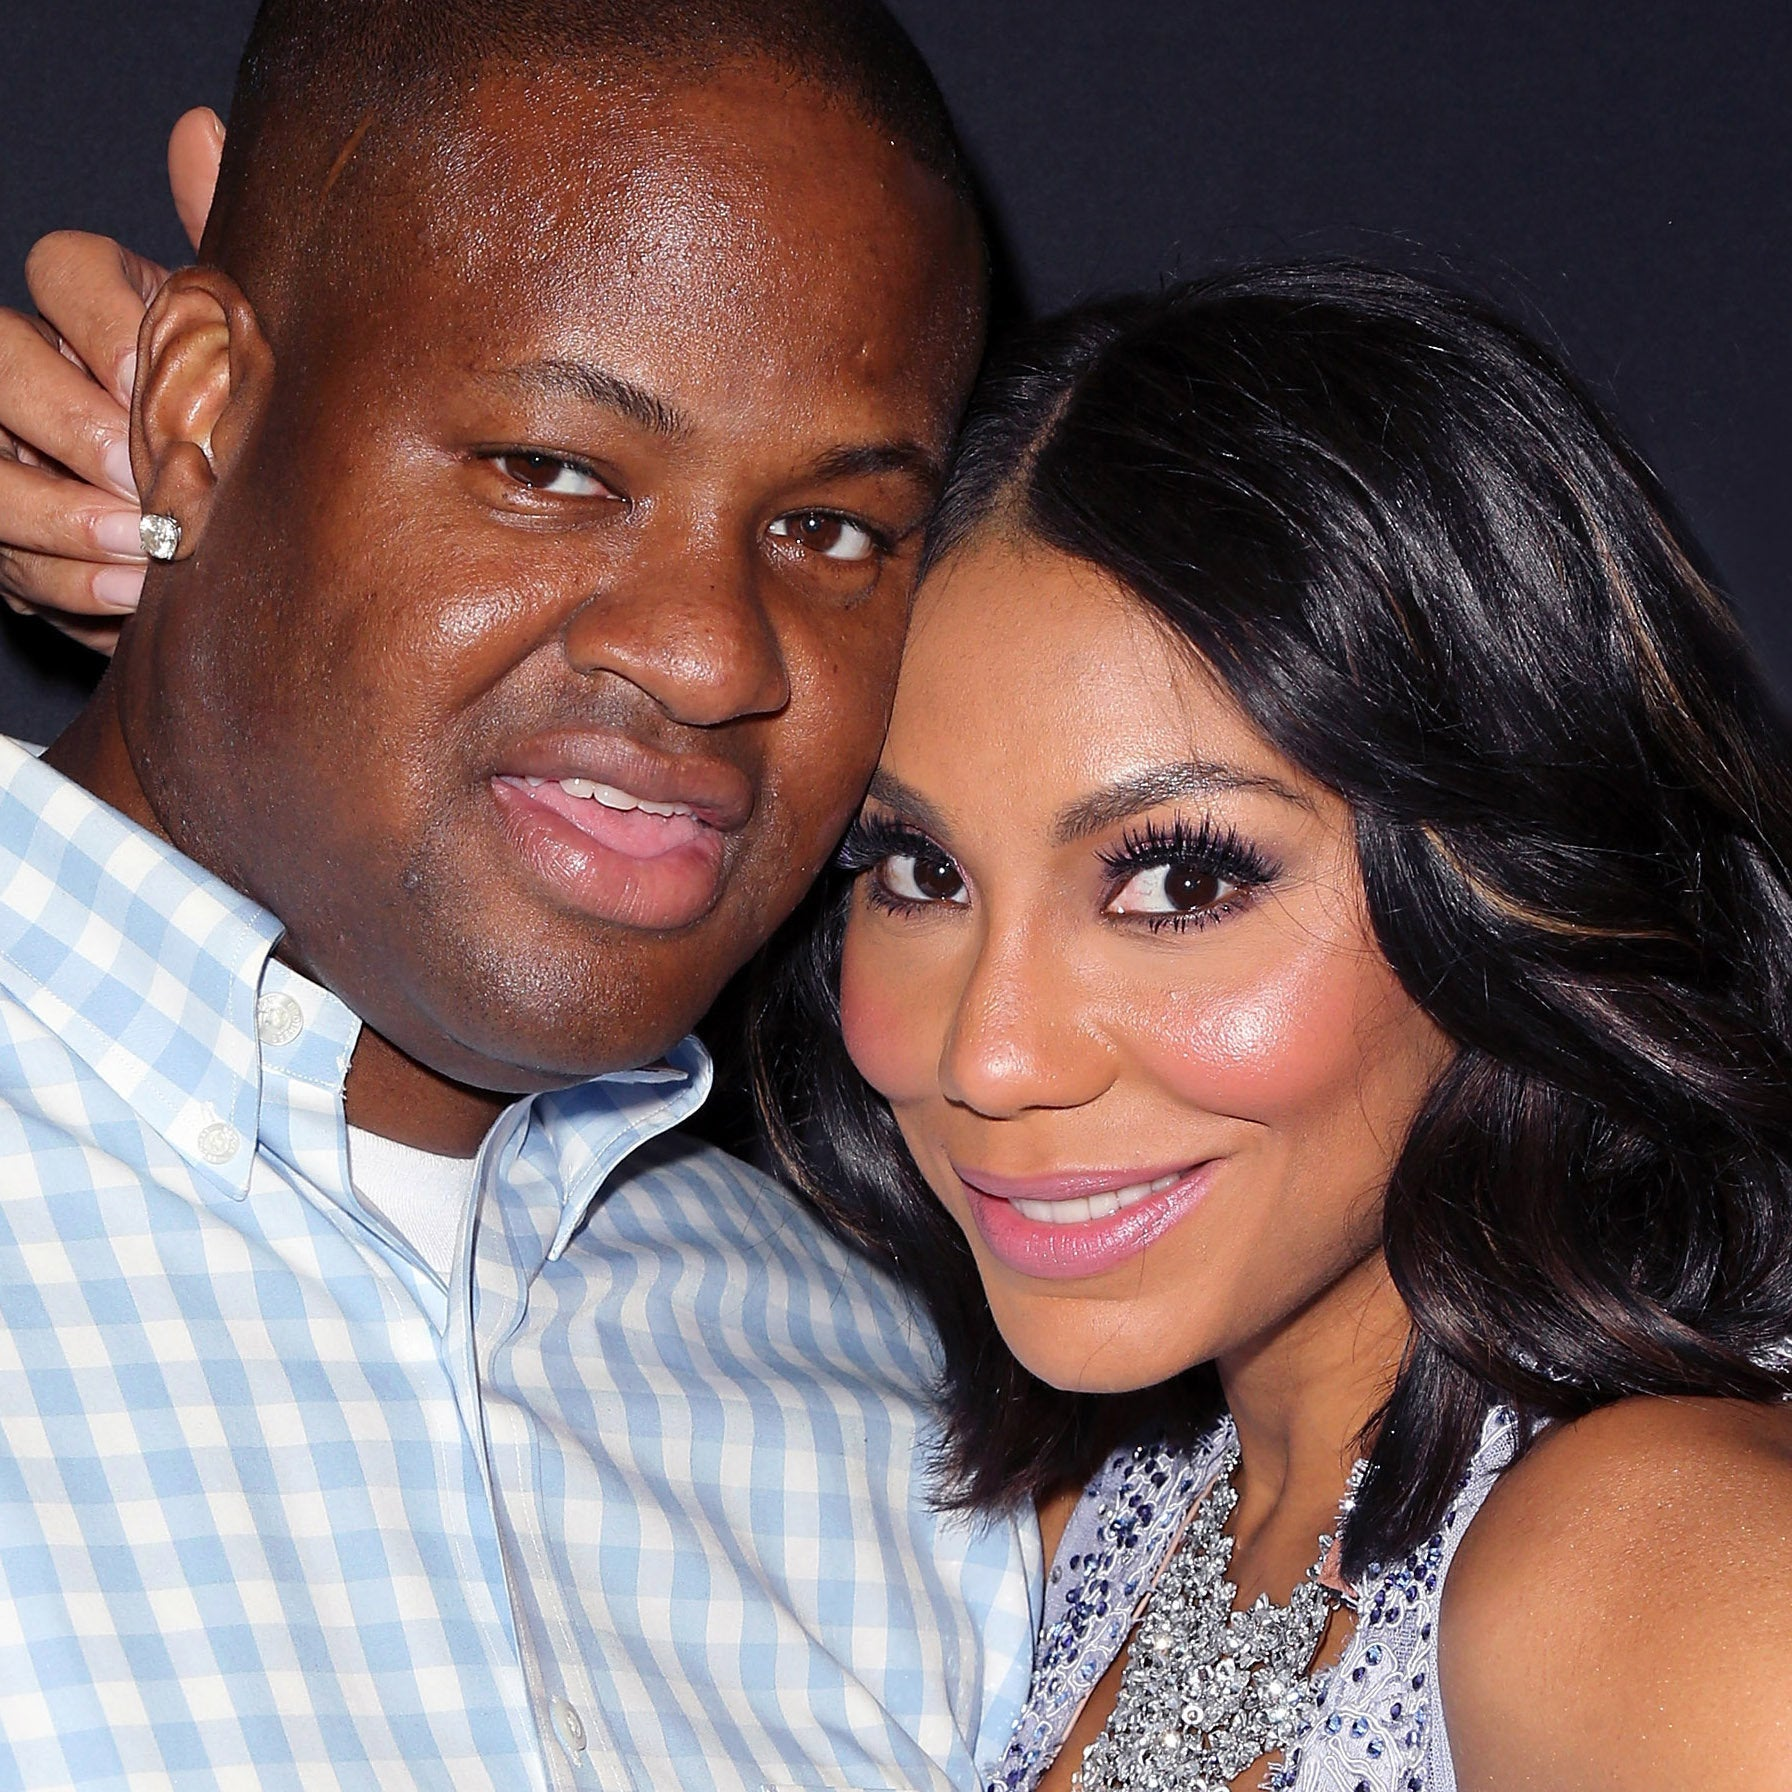 Tamar Braxton and Husband Vince Herbert Get Cozy At Bad Boy Reunion Tour, Put Breakup Rumors to Rest